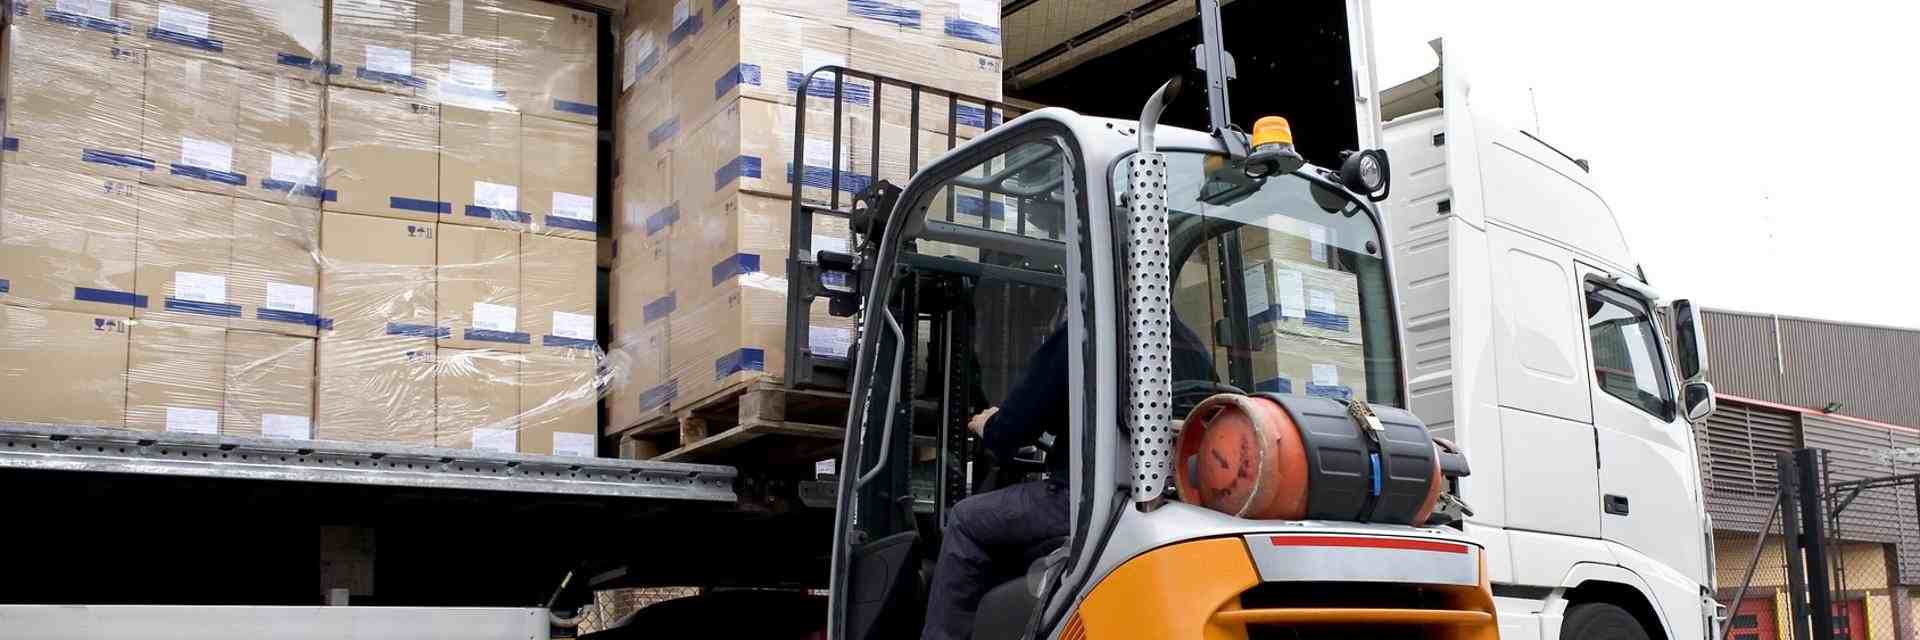 Pallet Delivery Service in Derby - Pallet Distribution